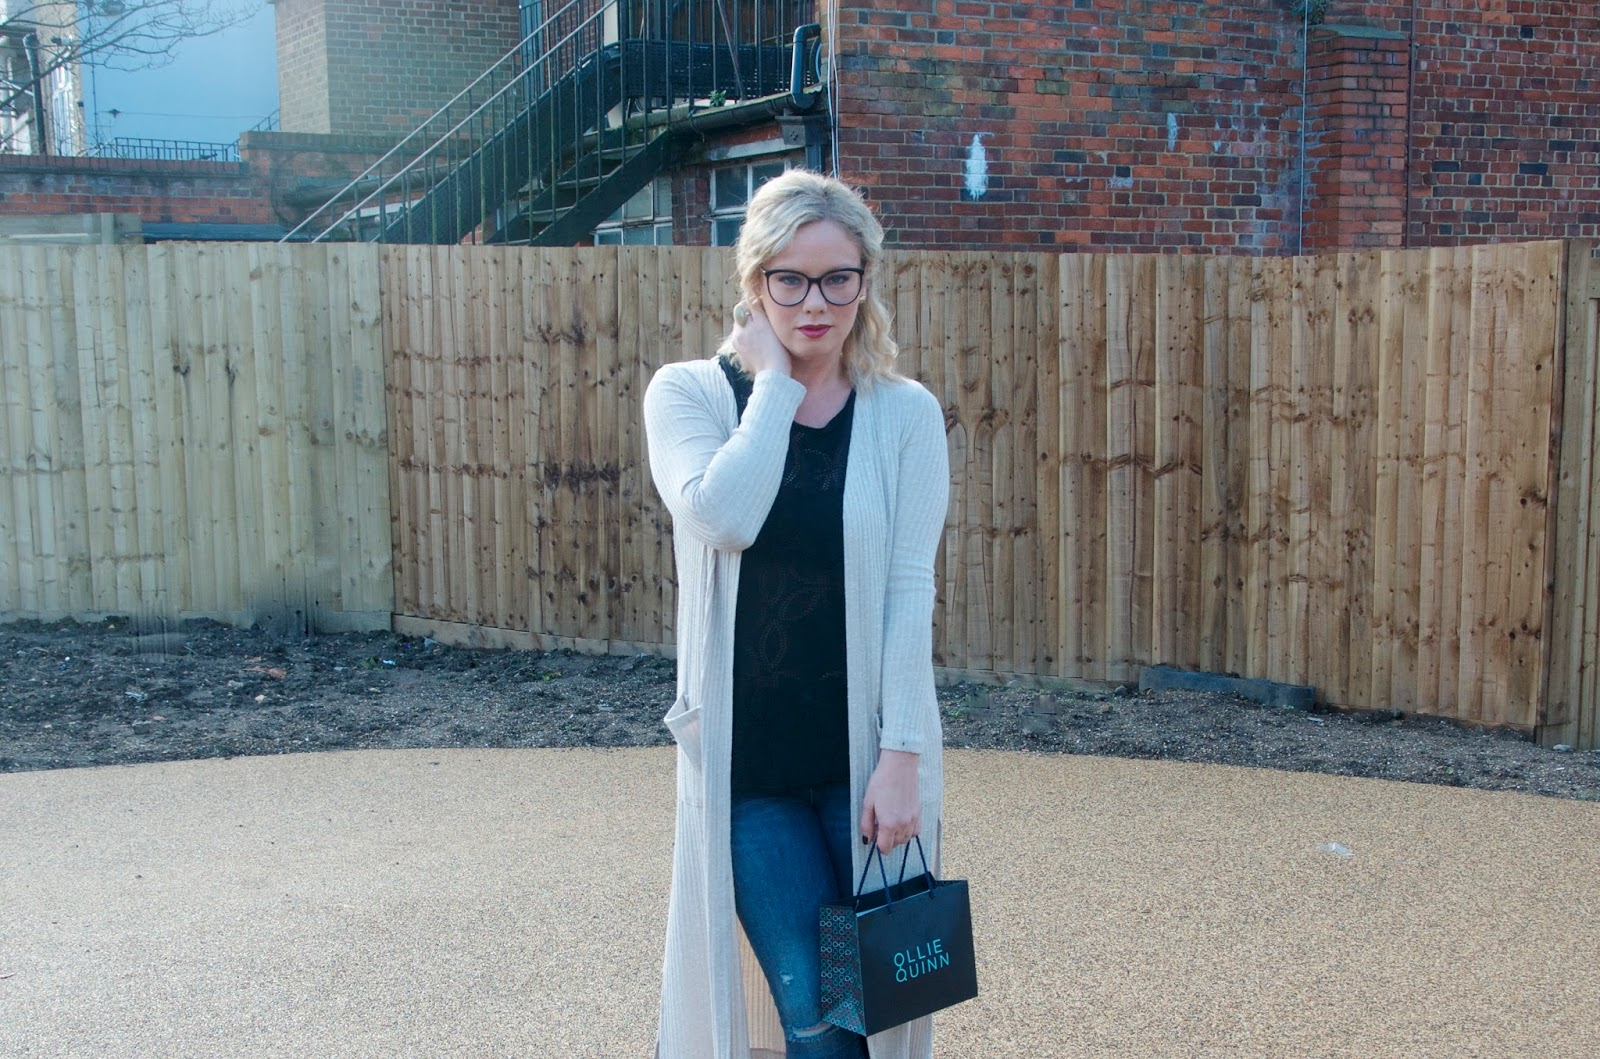 Long cream cardigan, black eyelet top, distressed blue jeans and black round rimmed glasses with ollie quinn shopping bag